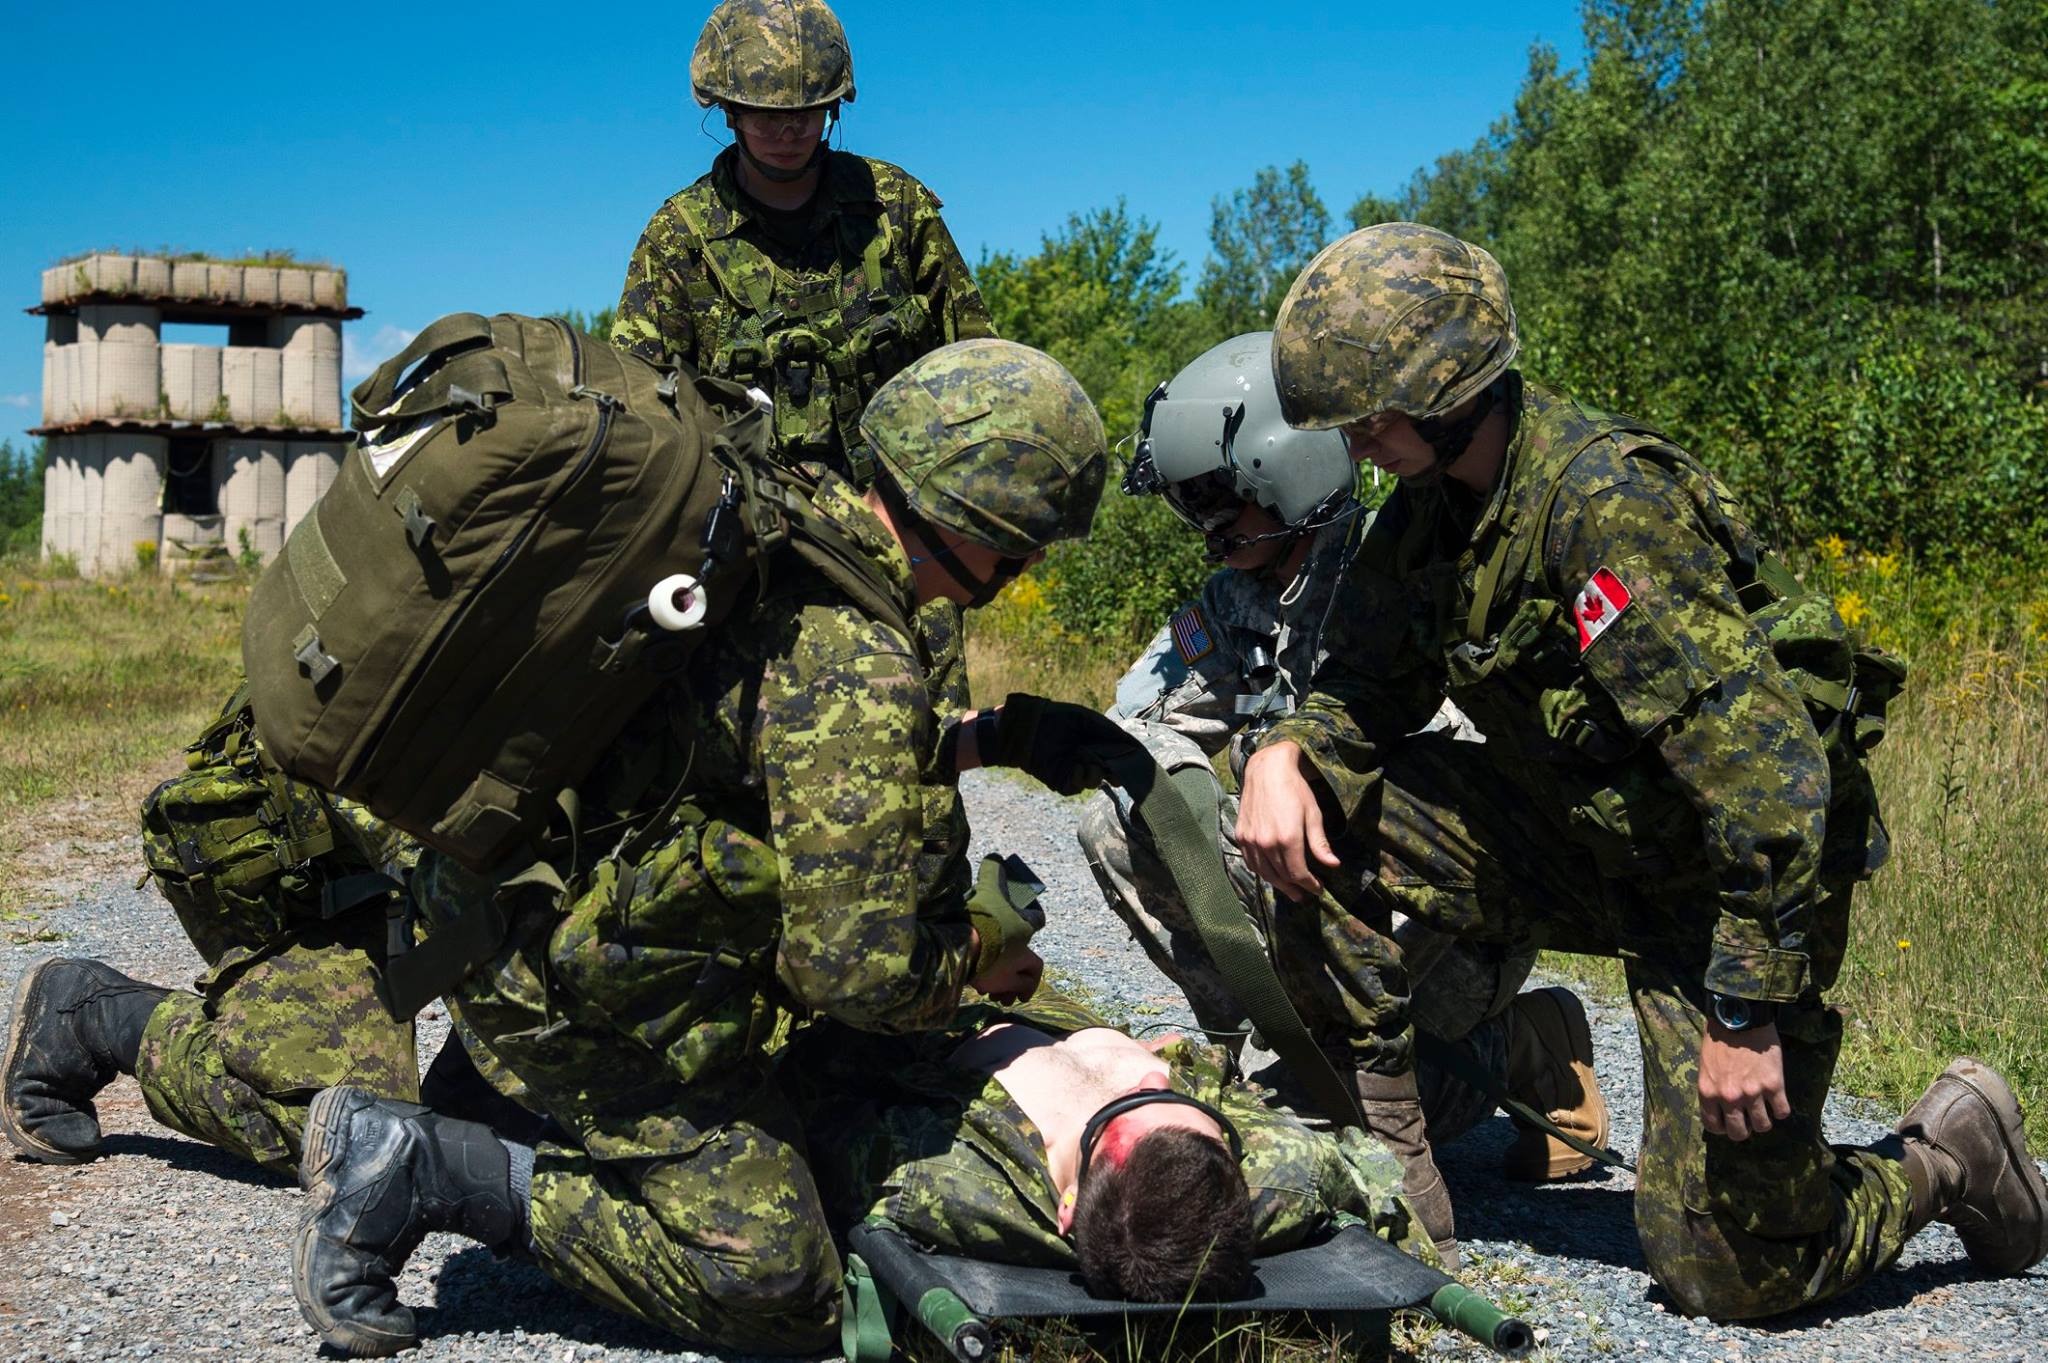 Military medics prepare to transfer a simulated casualty as part of a casualty exercise during Exercise STRIDENT TRACER at 5th Canadian Division Support Base Gagetown on August 23, 2016. ©2016 DND/MDN Canada. Photo by: Corporal Chris Ringius, Formation Imaging Section Halifax